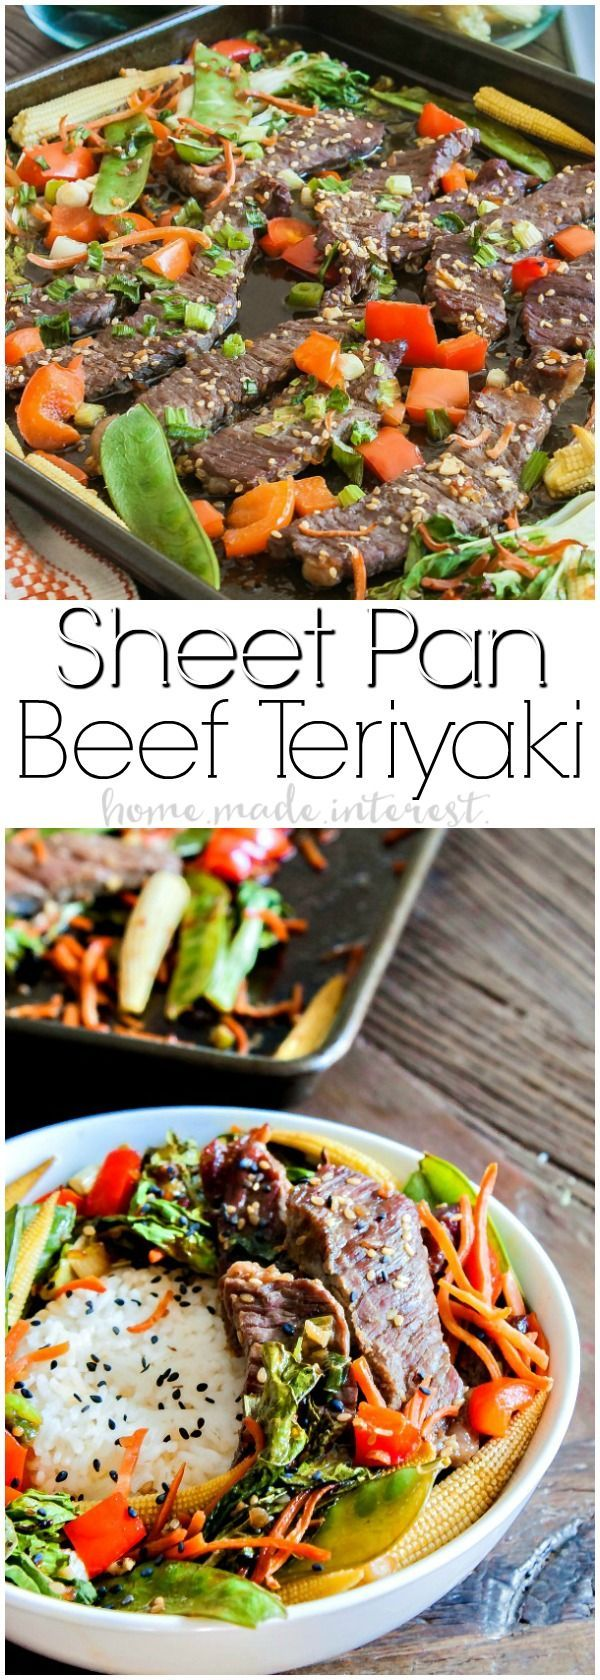 Sheet Pan Beef Teriyaki | This easy sheet pan meal is an easy weeknight dinner recipe that takes less than 30 minutes to make. Sheet pan beef teriyaki recipe is thin slices of beef tossed in teriyaki sauce and baked with asian vegetables. Serve this easy sheet pan dinner recipe over rice or noodles for a quick and easy dinner. @soyvay #ad